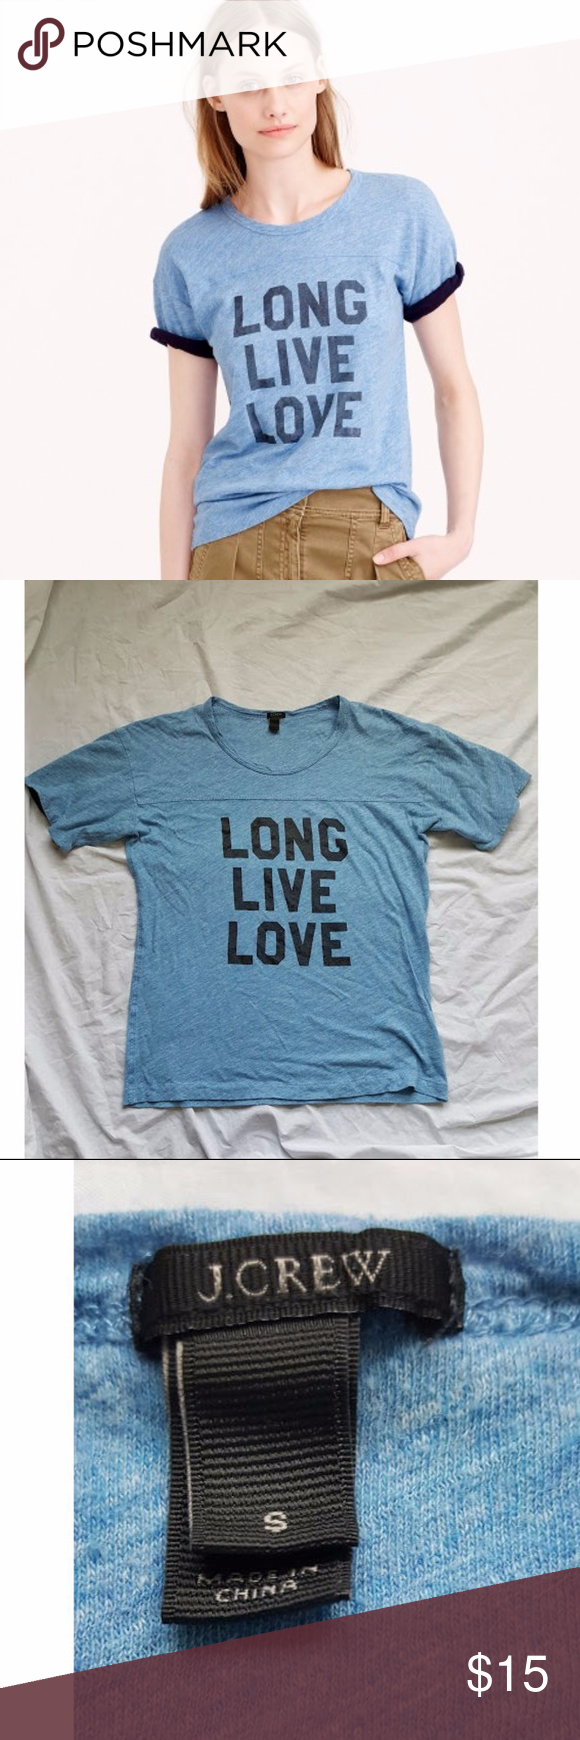 "J.Crew Long Live Love Blue Shirt Small Slouchy boy fit with optional rolled sleeves. Heathered blue. Lightly worn. The screen printed letters show light wear from being washed. No other flaws, stains, holes, etc.  Women's size small.  Approximate measurements laid flat- Pit to pit- 18"" Length- 24""  100% Cotton J. Crew Tops Tees - Short Sleeve"